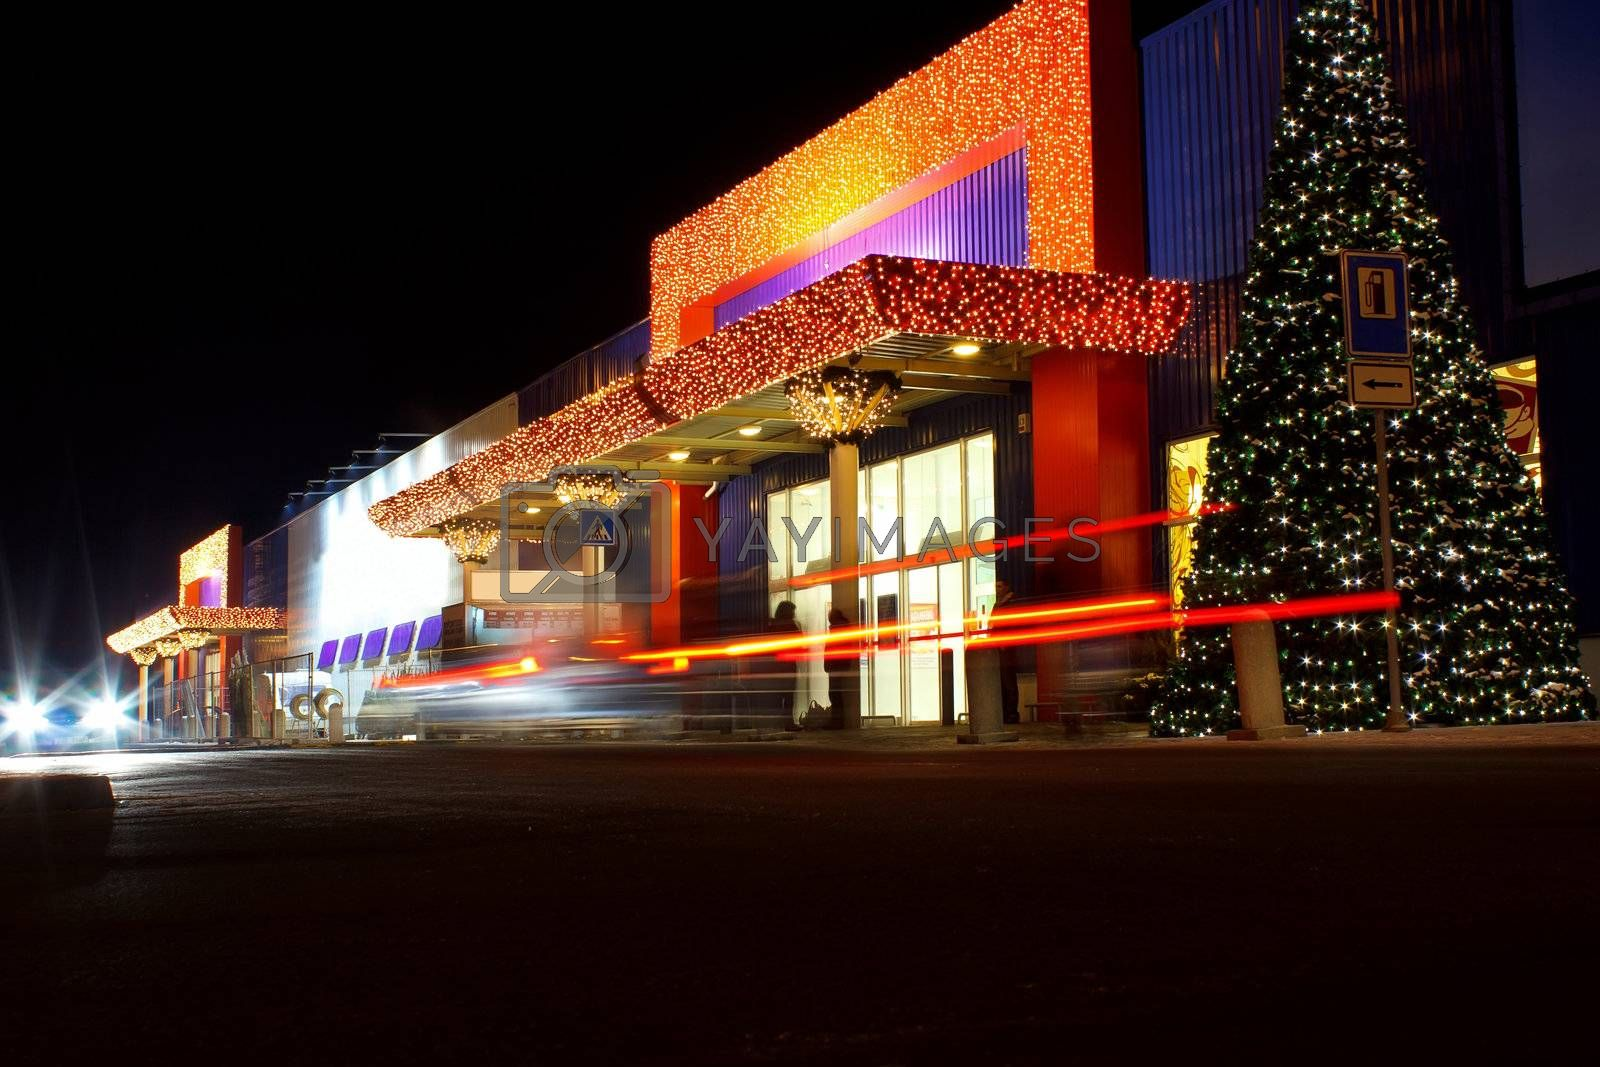 Royalty free image of Christmas decorated shopping center, Jihlava Czech Republic by artush